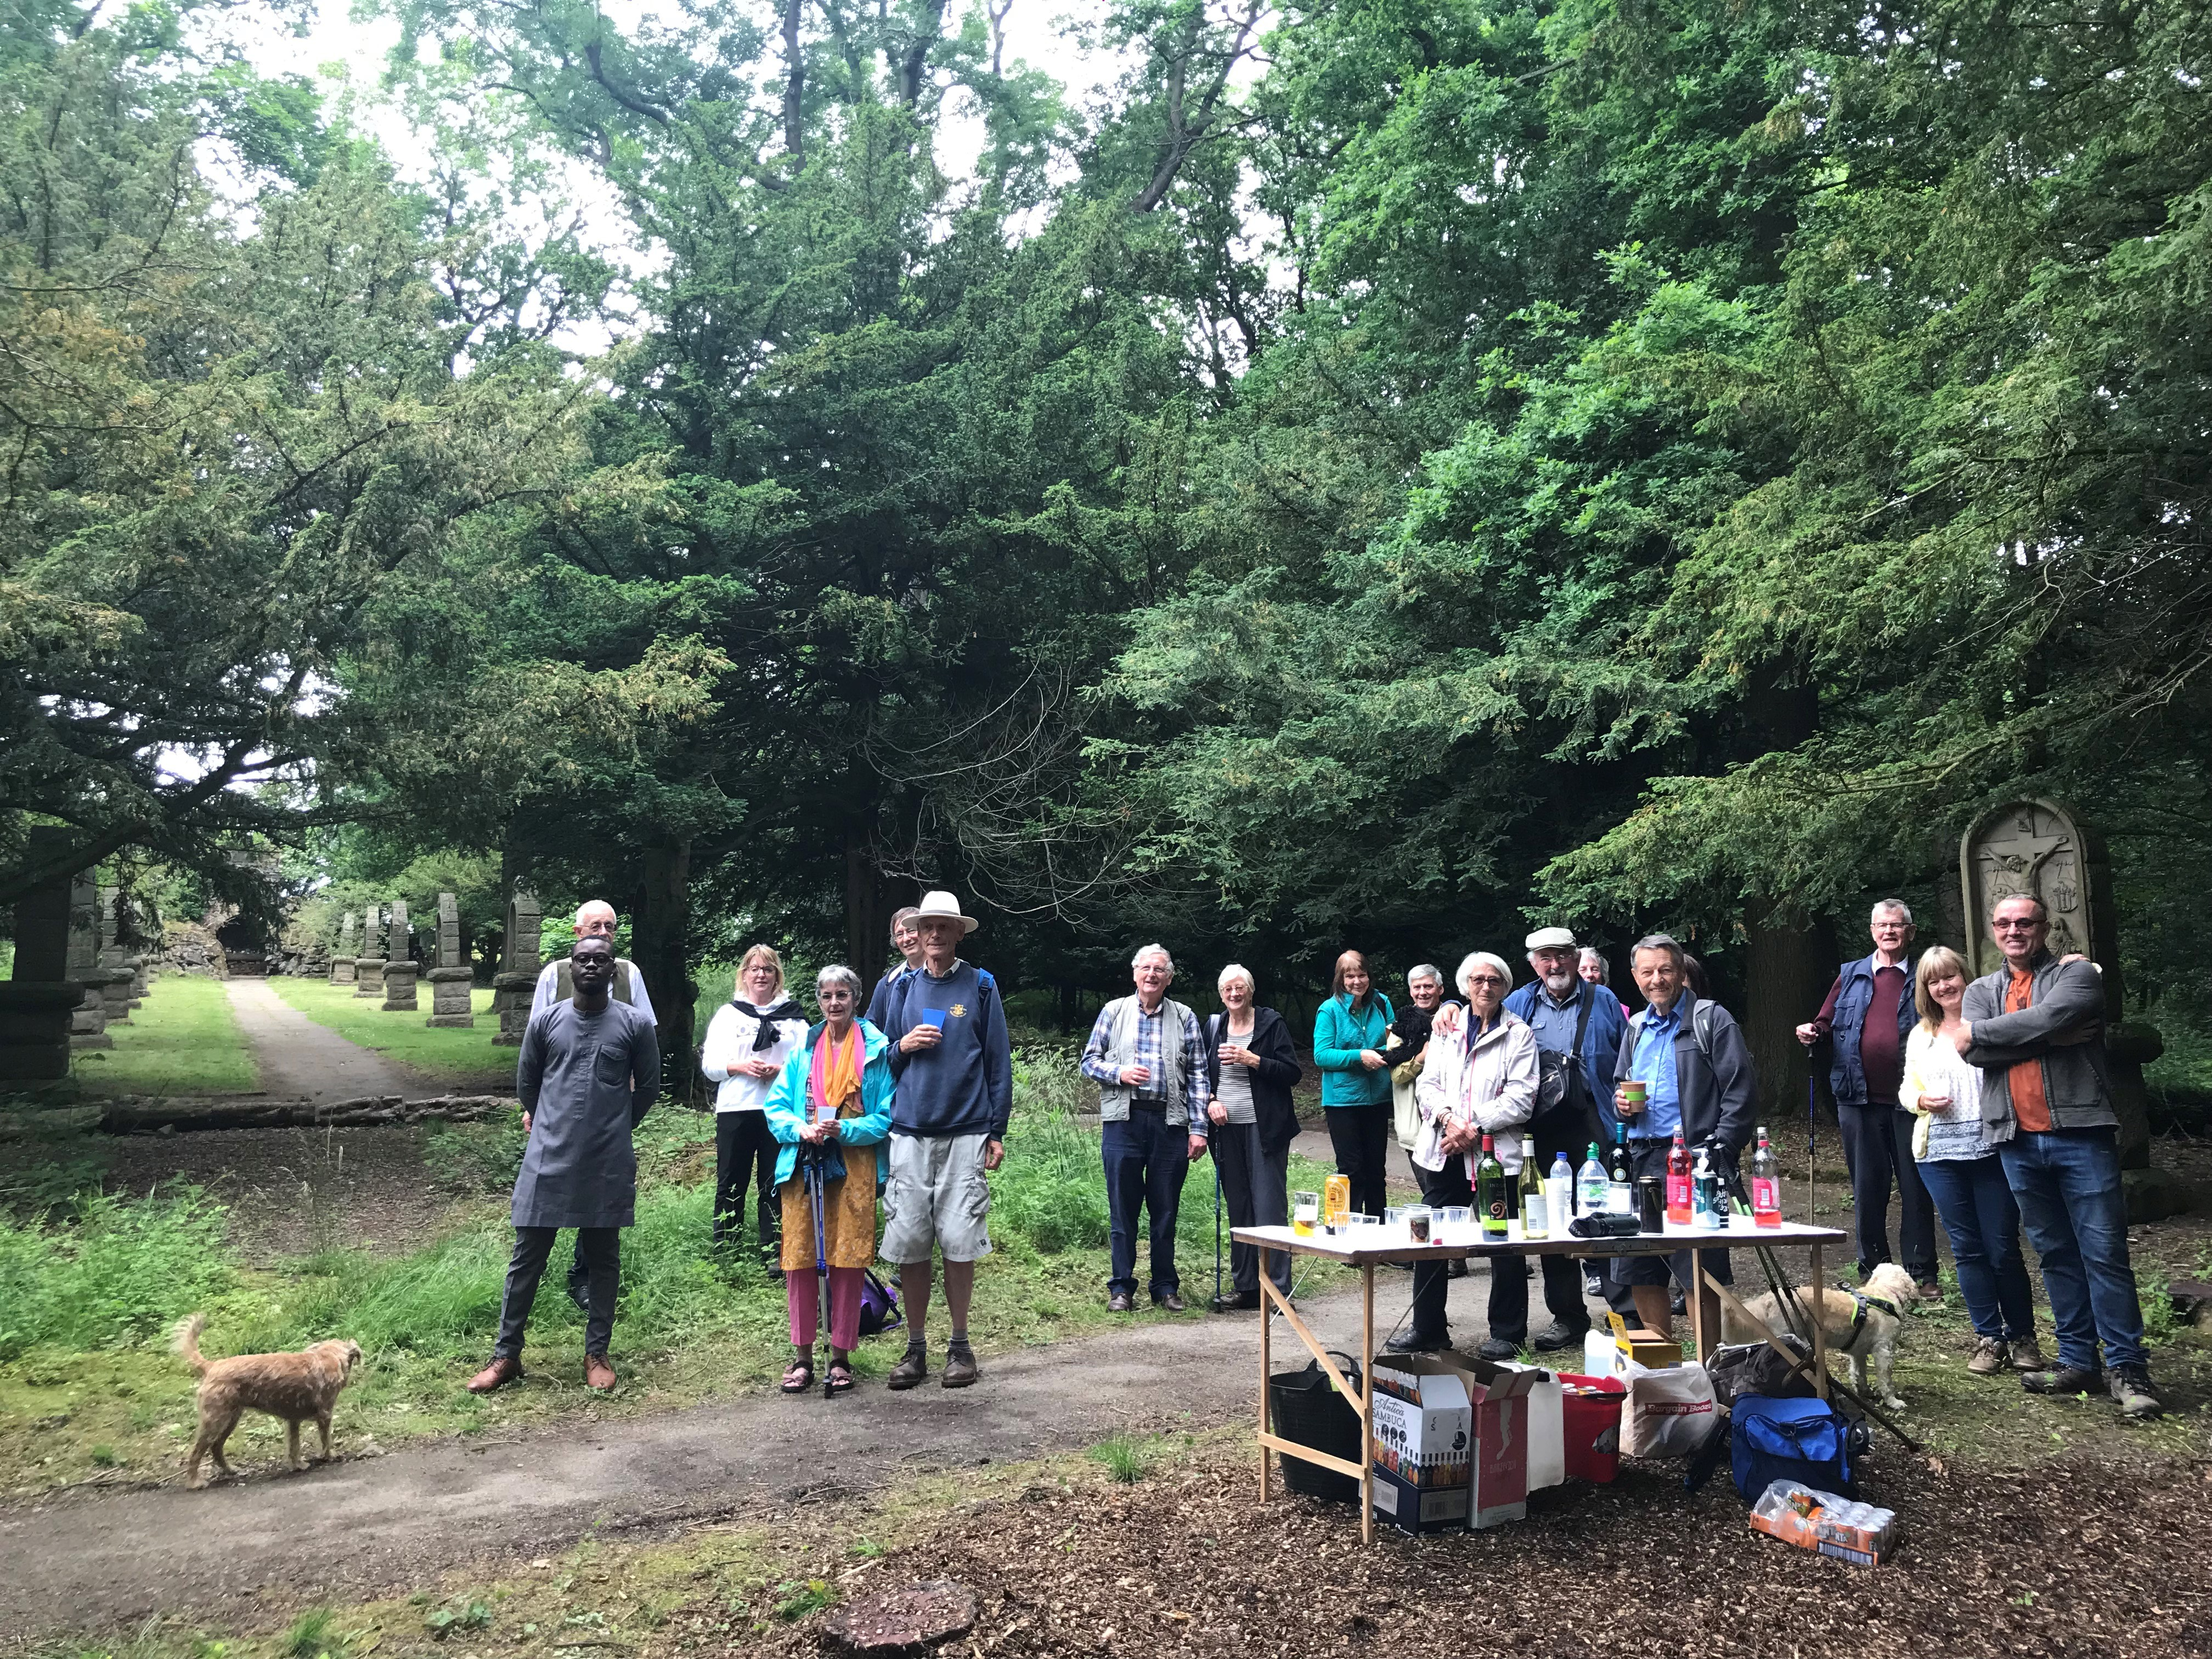 Well-attended Laudato Si' Mini-Pilgrimage at Myddelton!